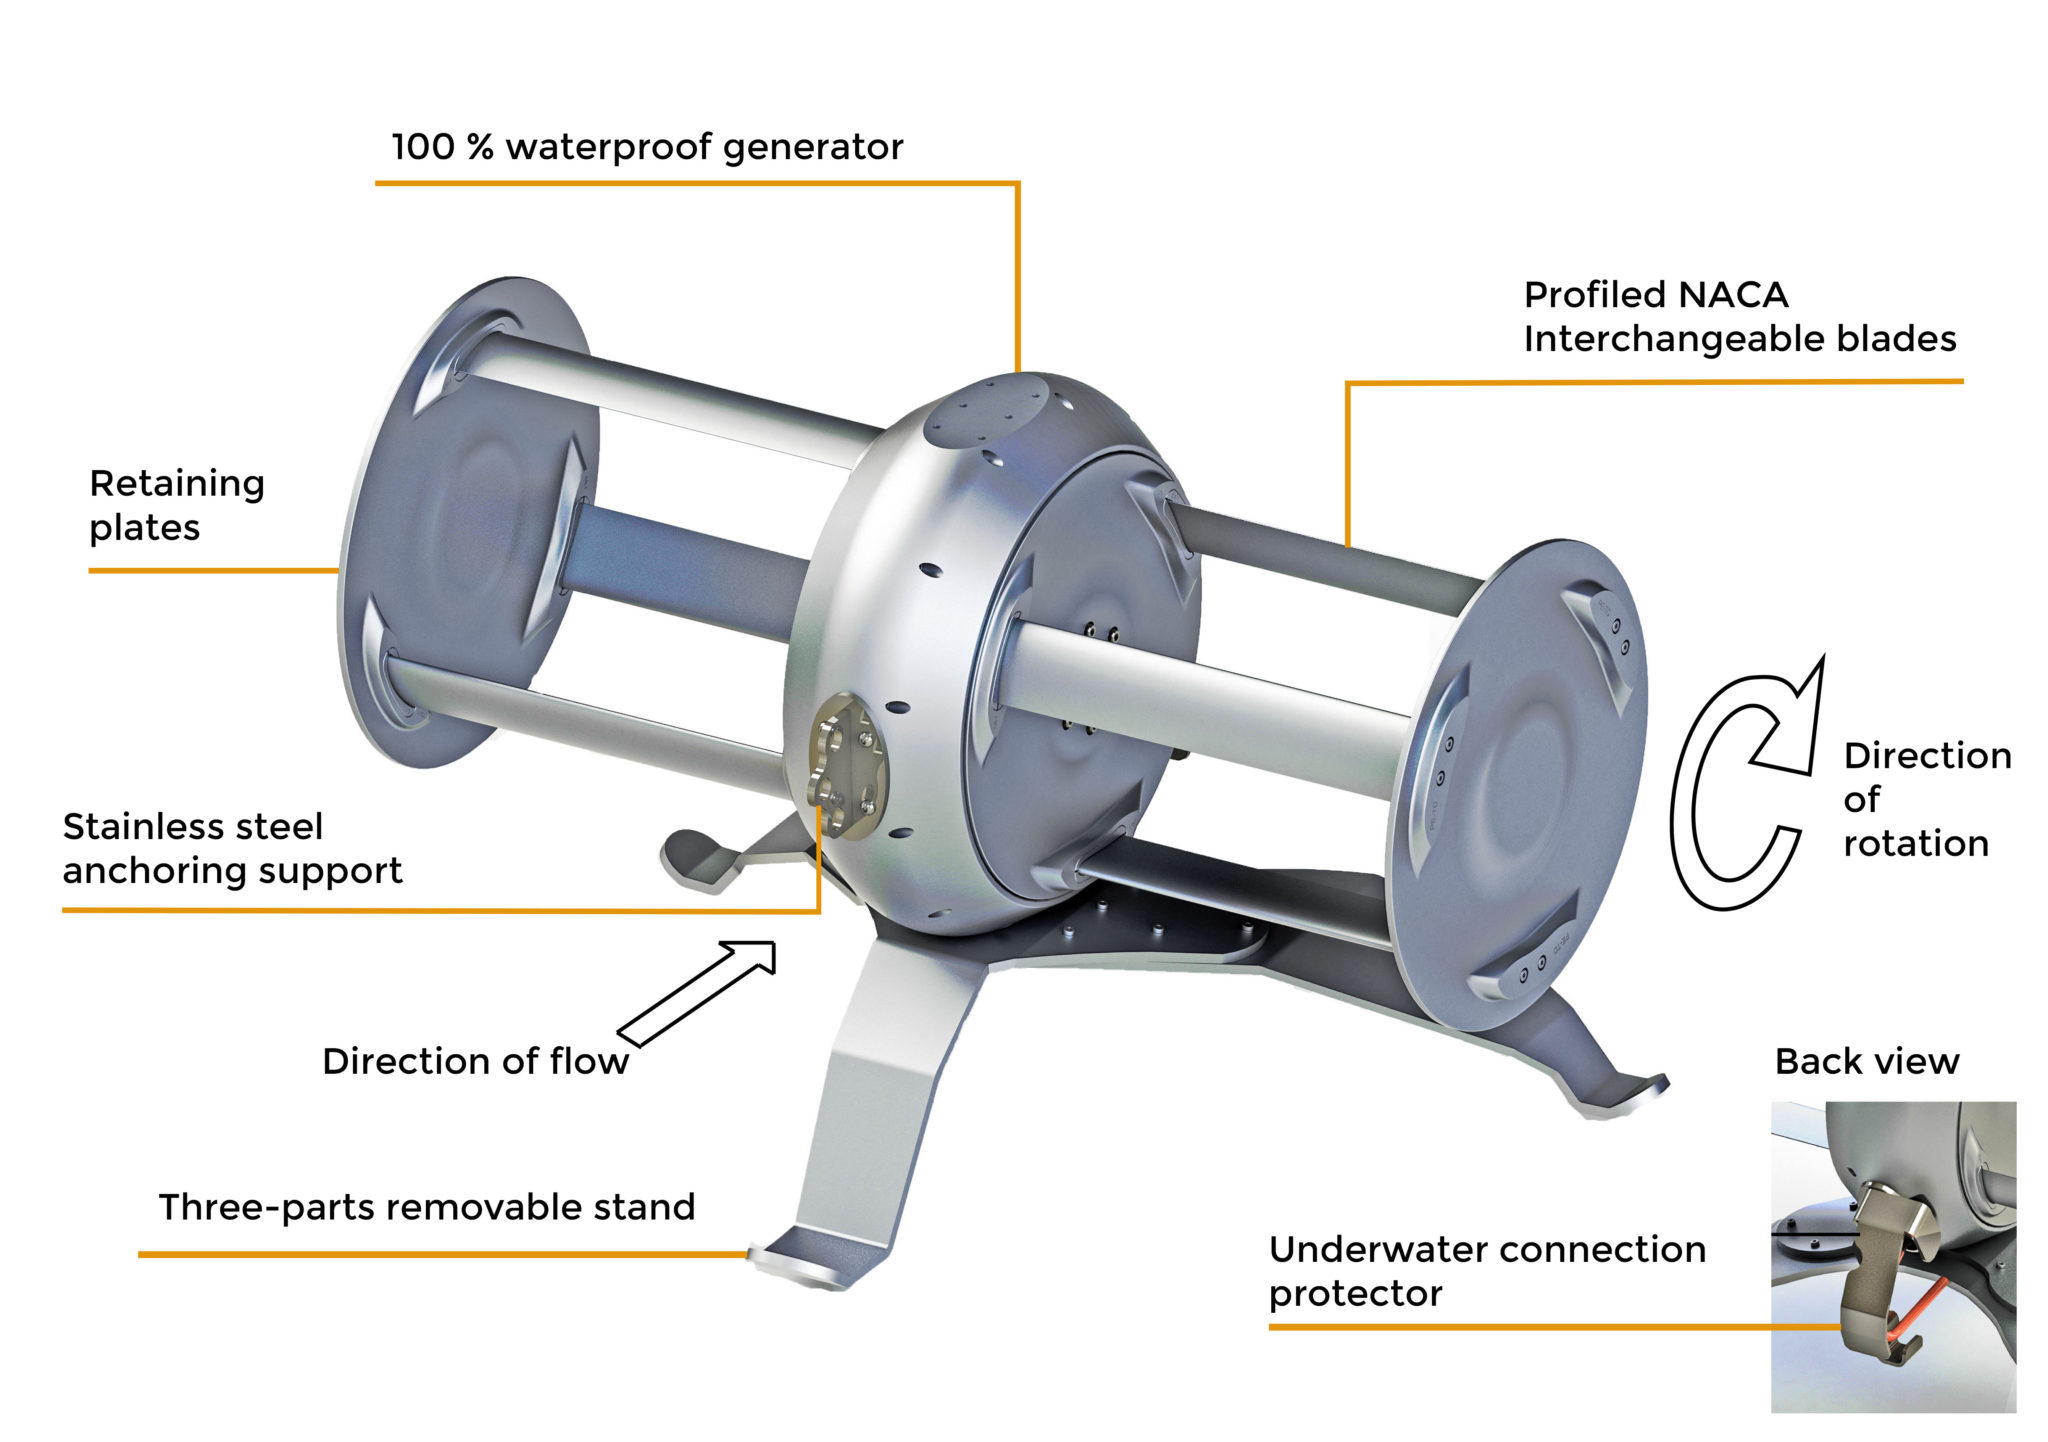 Portable River Turbine Generating 12 kWh Daily Power 55 Gad s